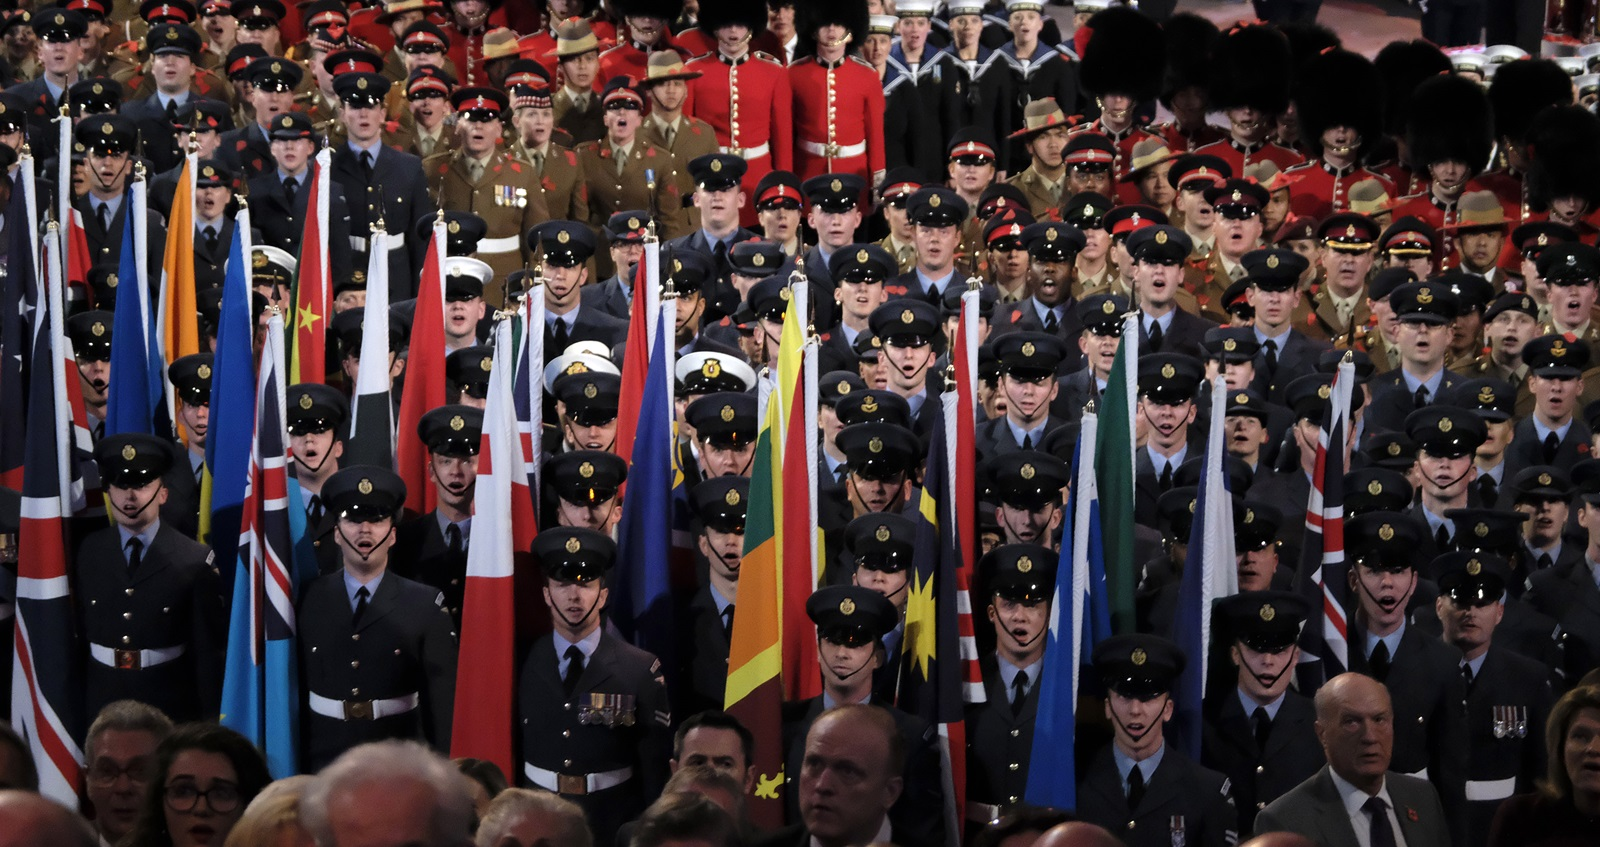 Festival of Remembrance 2018 Service